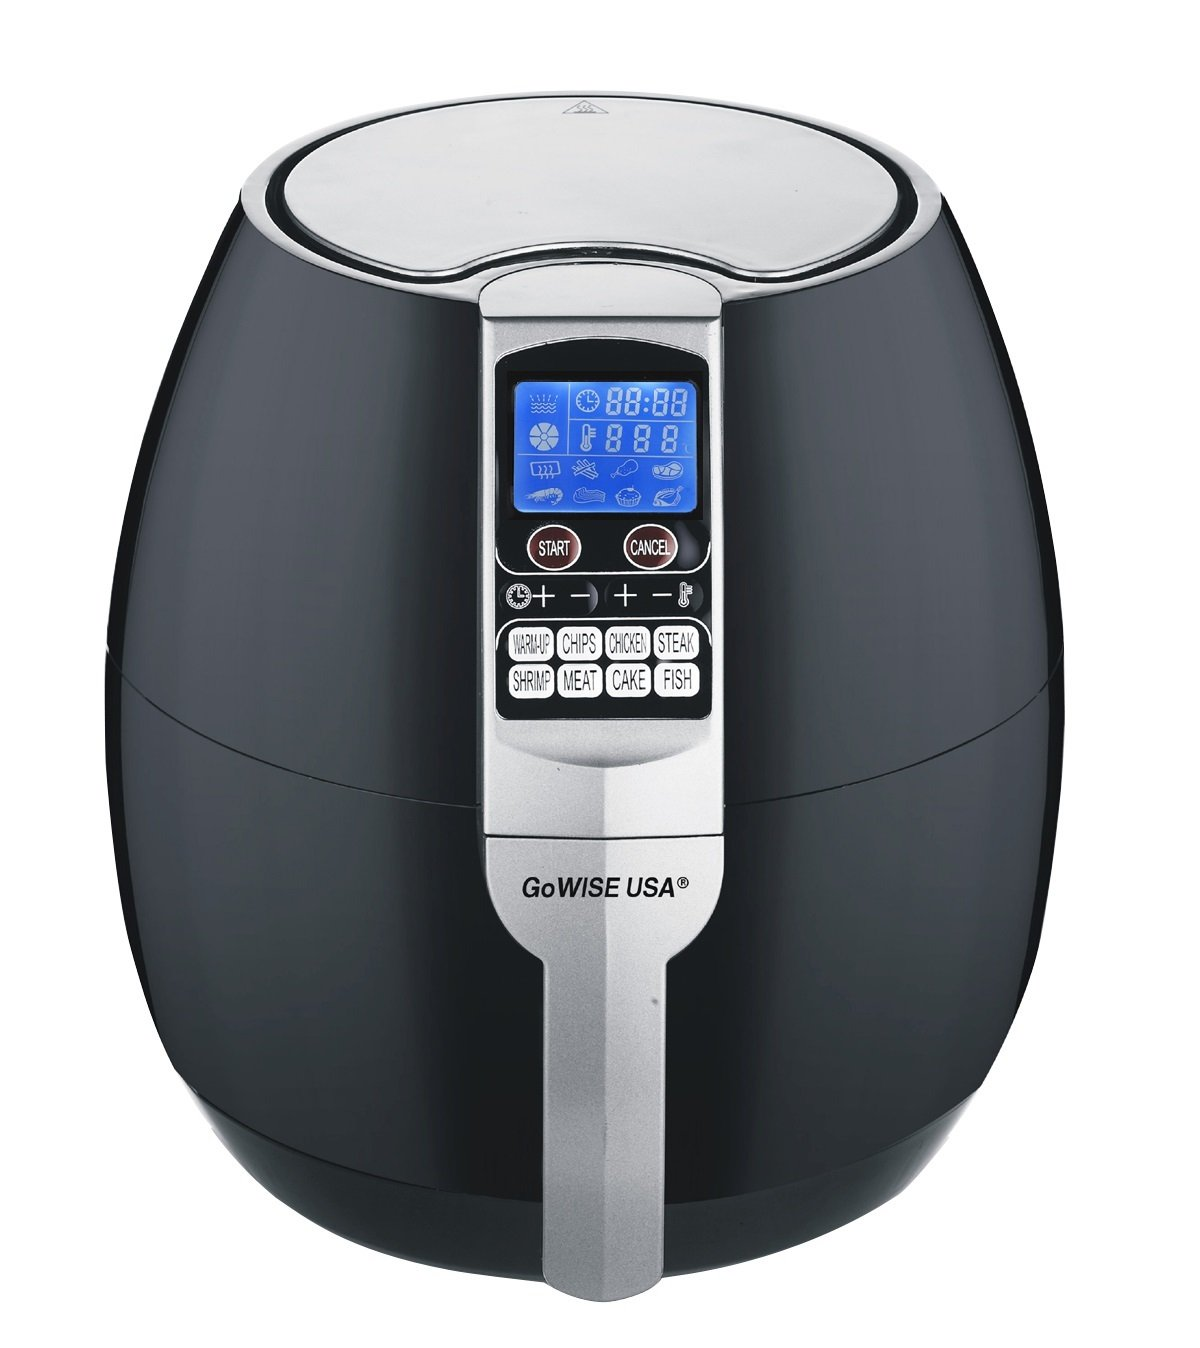 GoWISE USA 8-in-1 Electric Air Fryer with Digital Programmable Cooking Settings 2.5 QT